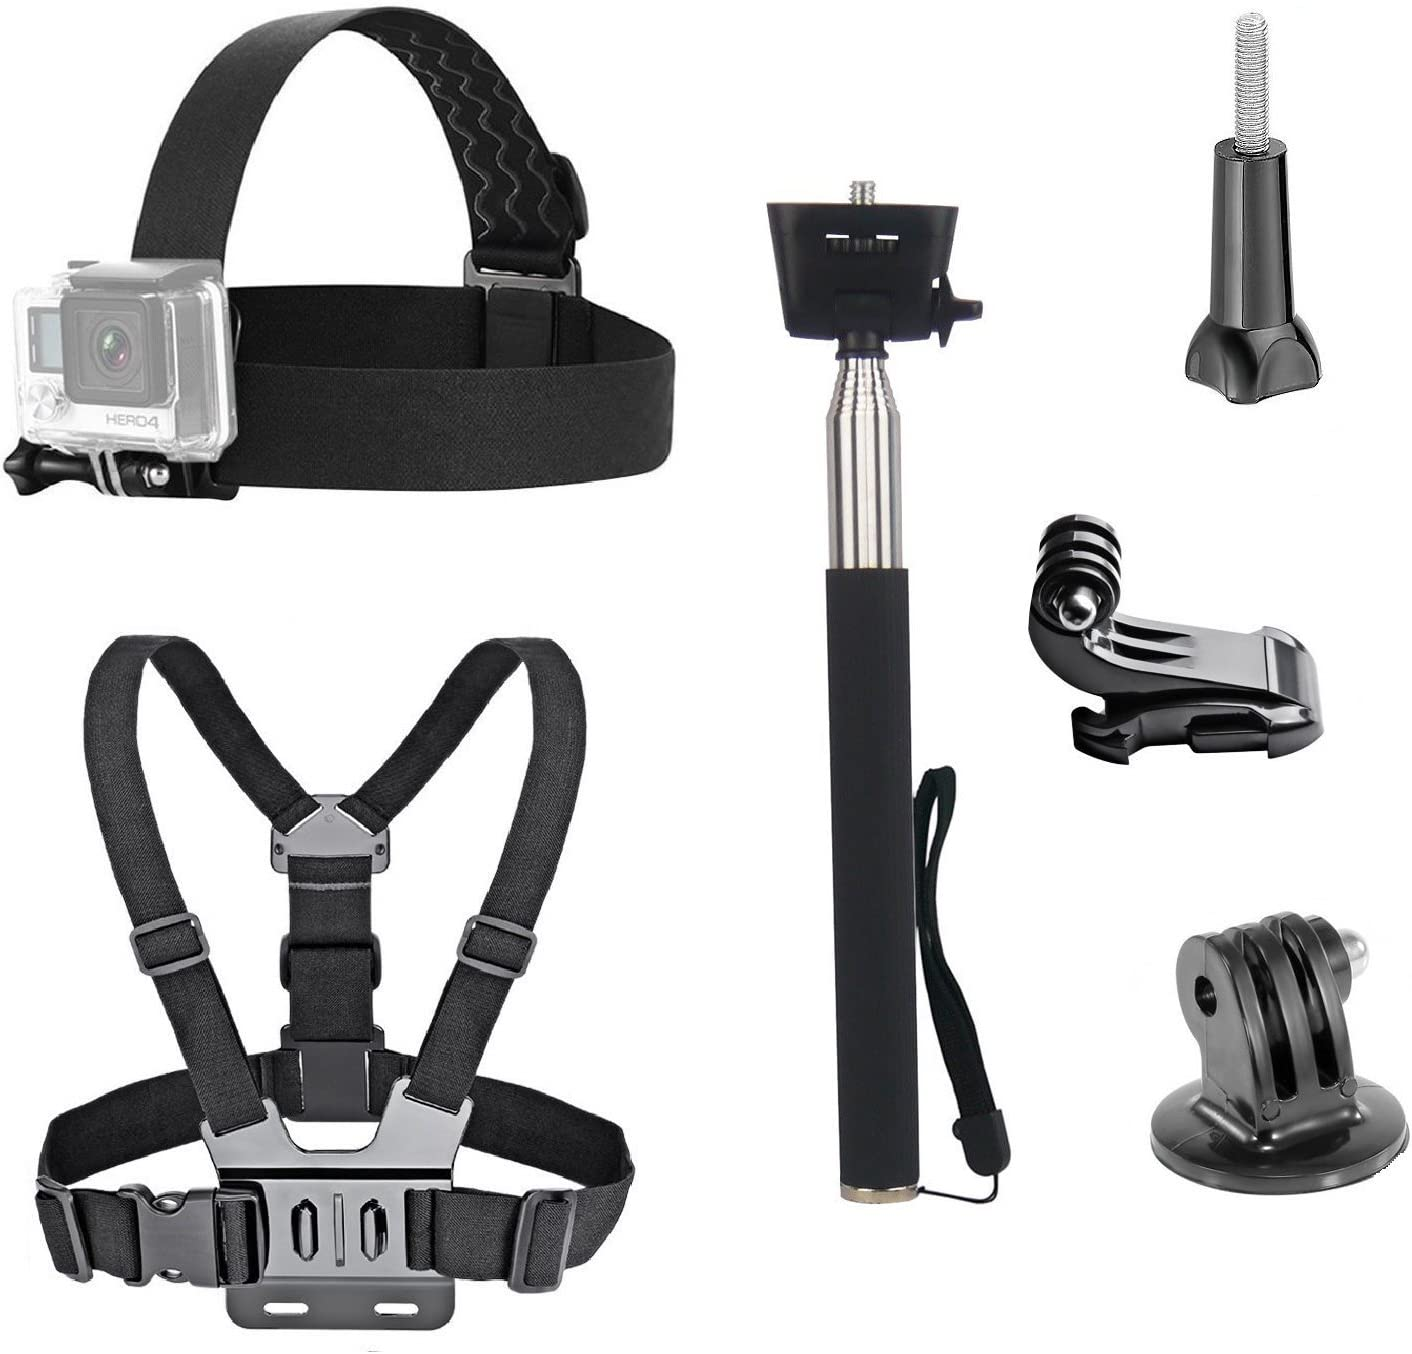 Navitech Action Camera Backpack /& 18-in-1 Accessory Combo Kit with Integrated Chest Strap Compatible with The Sony Action Cam HDR-AS15 Sony Action Cam HDR-AS30V